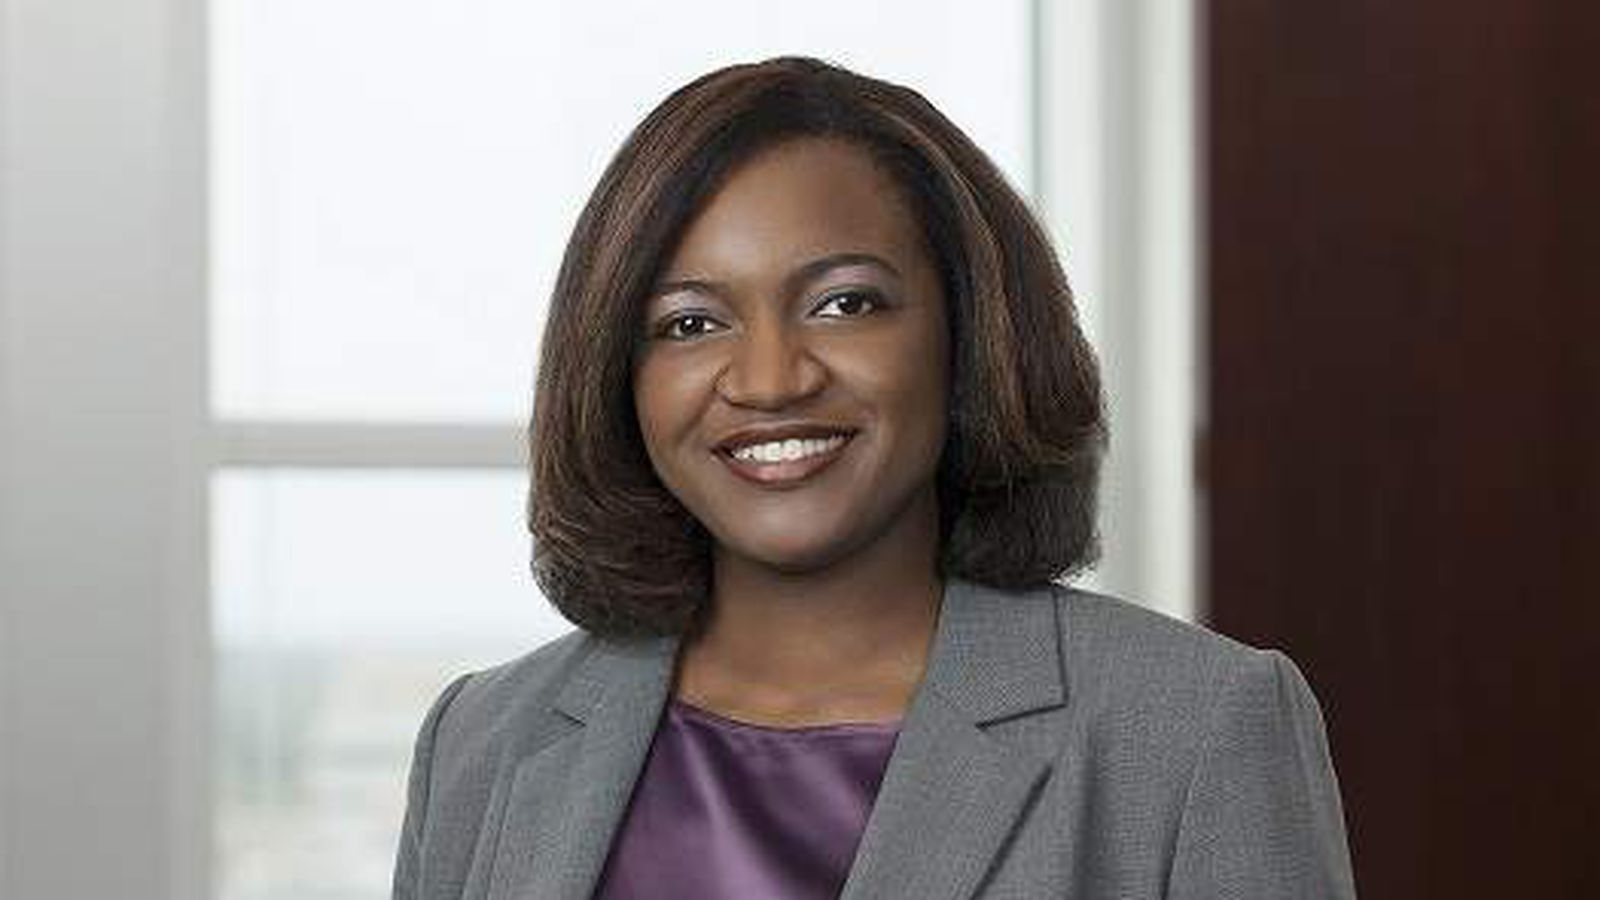 Tampa Rep. Fentrice Driskell Becomes First Black Woman to Lead Florida House Democrats